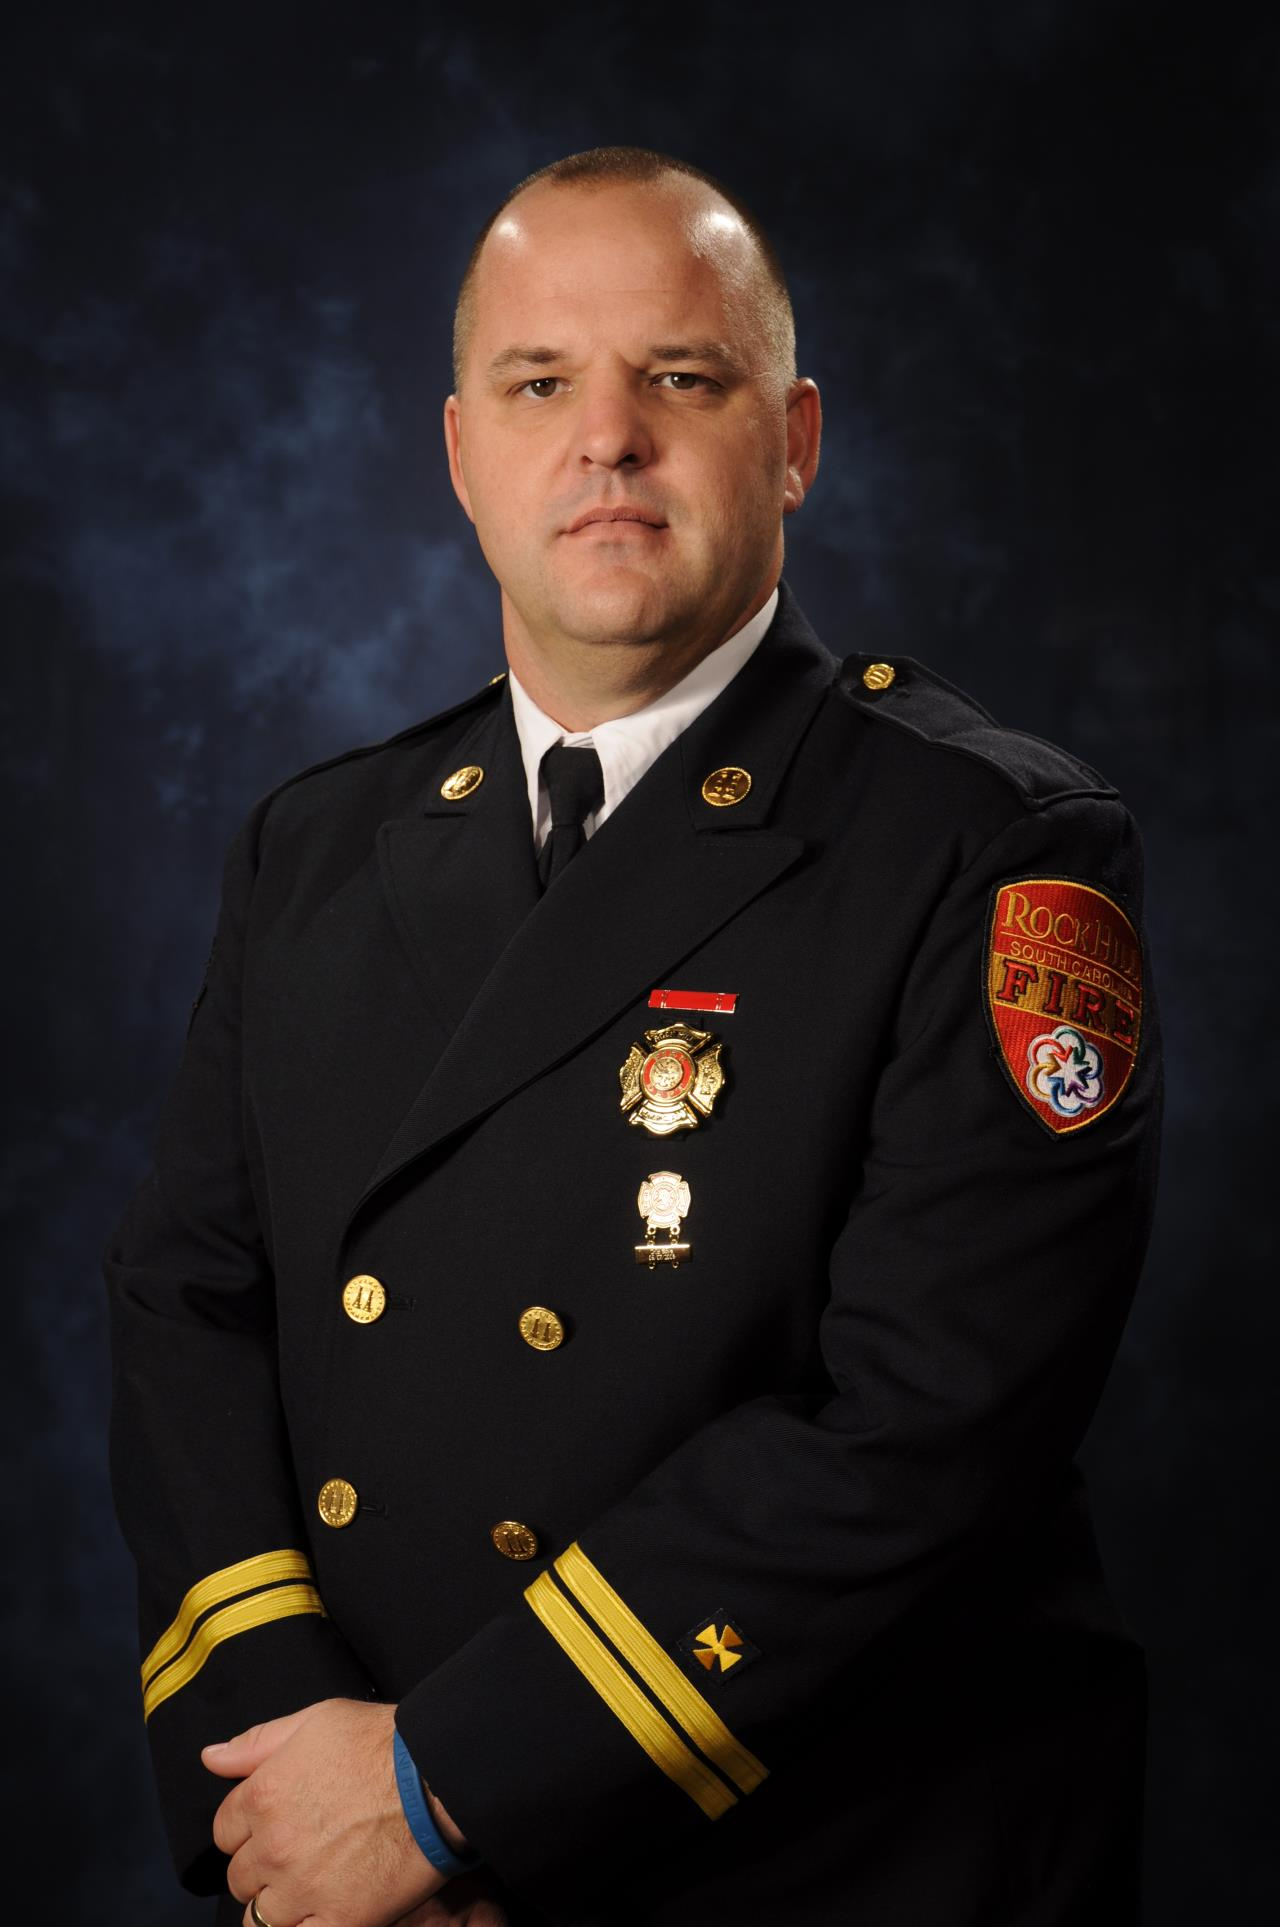 Battalion Chief                            Chris Channell